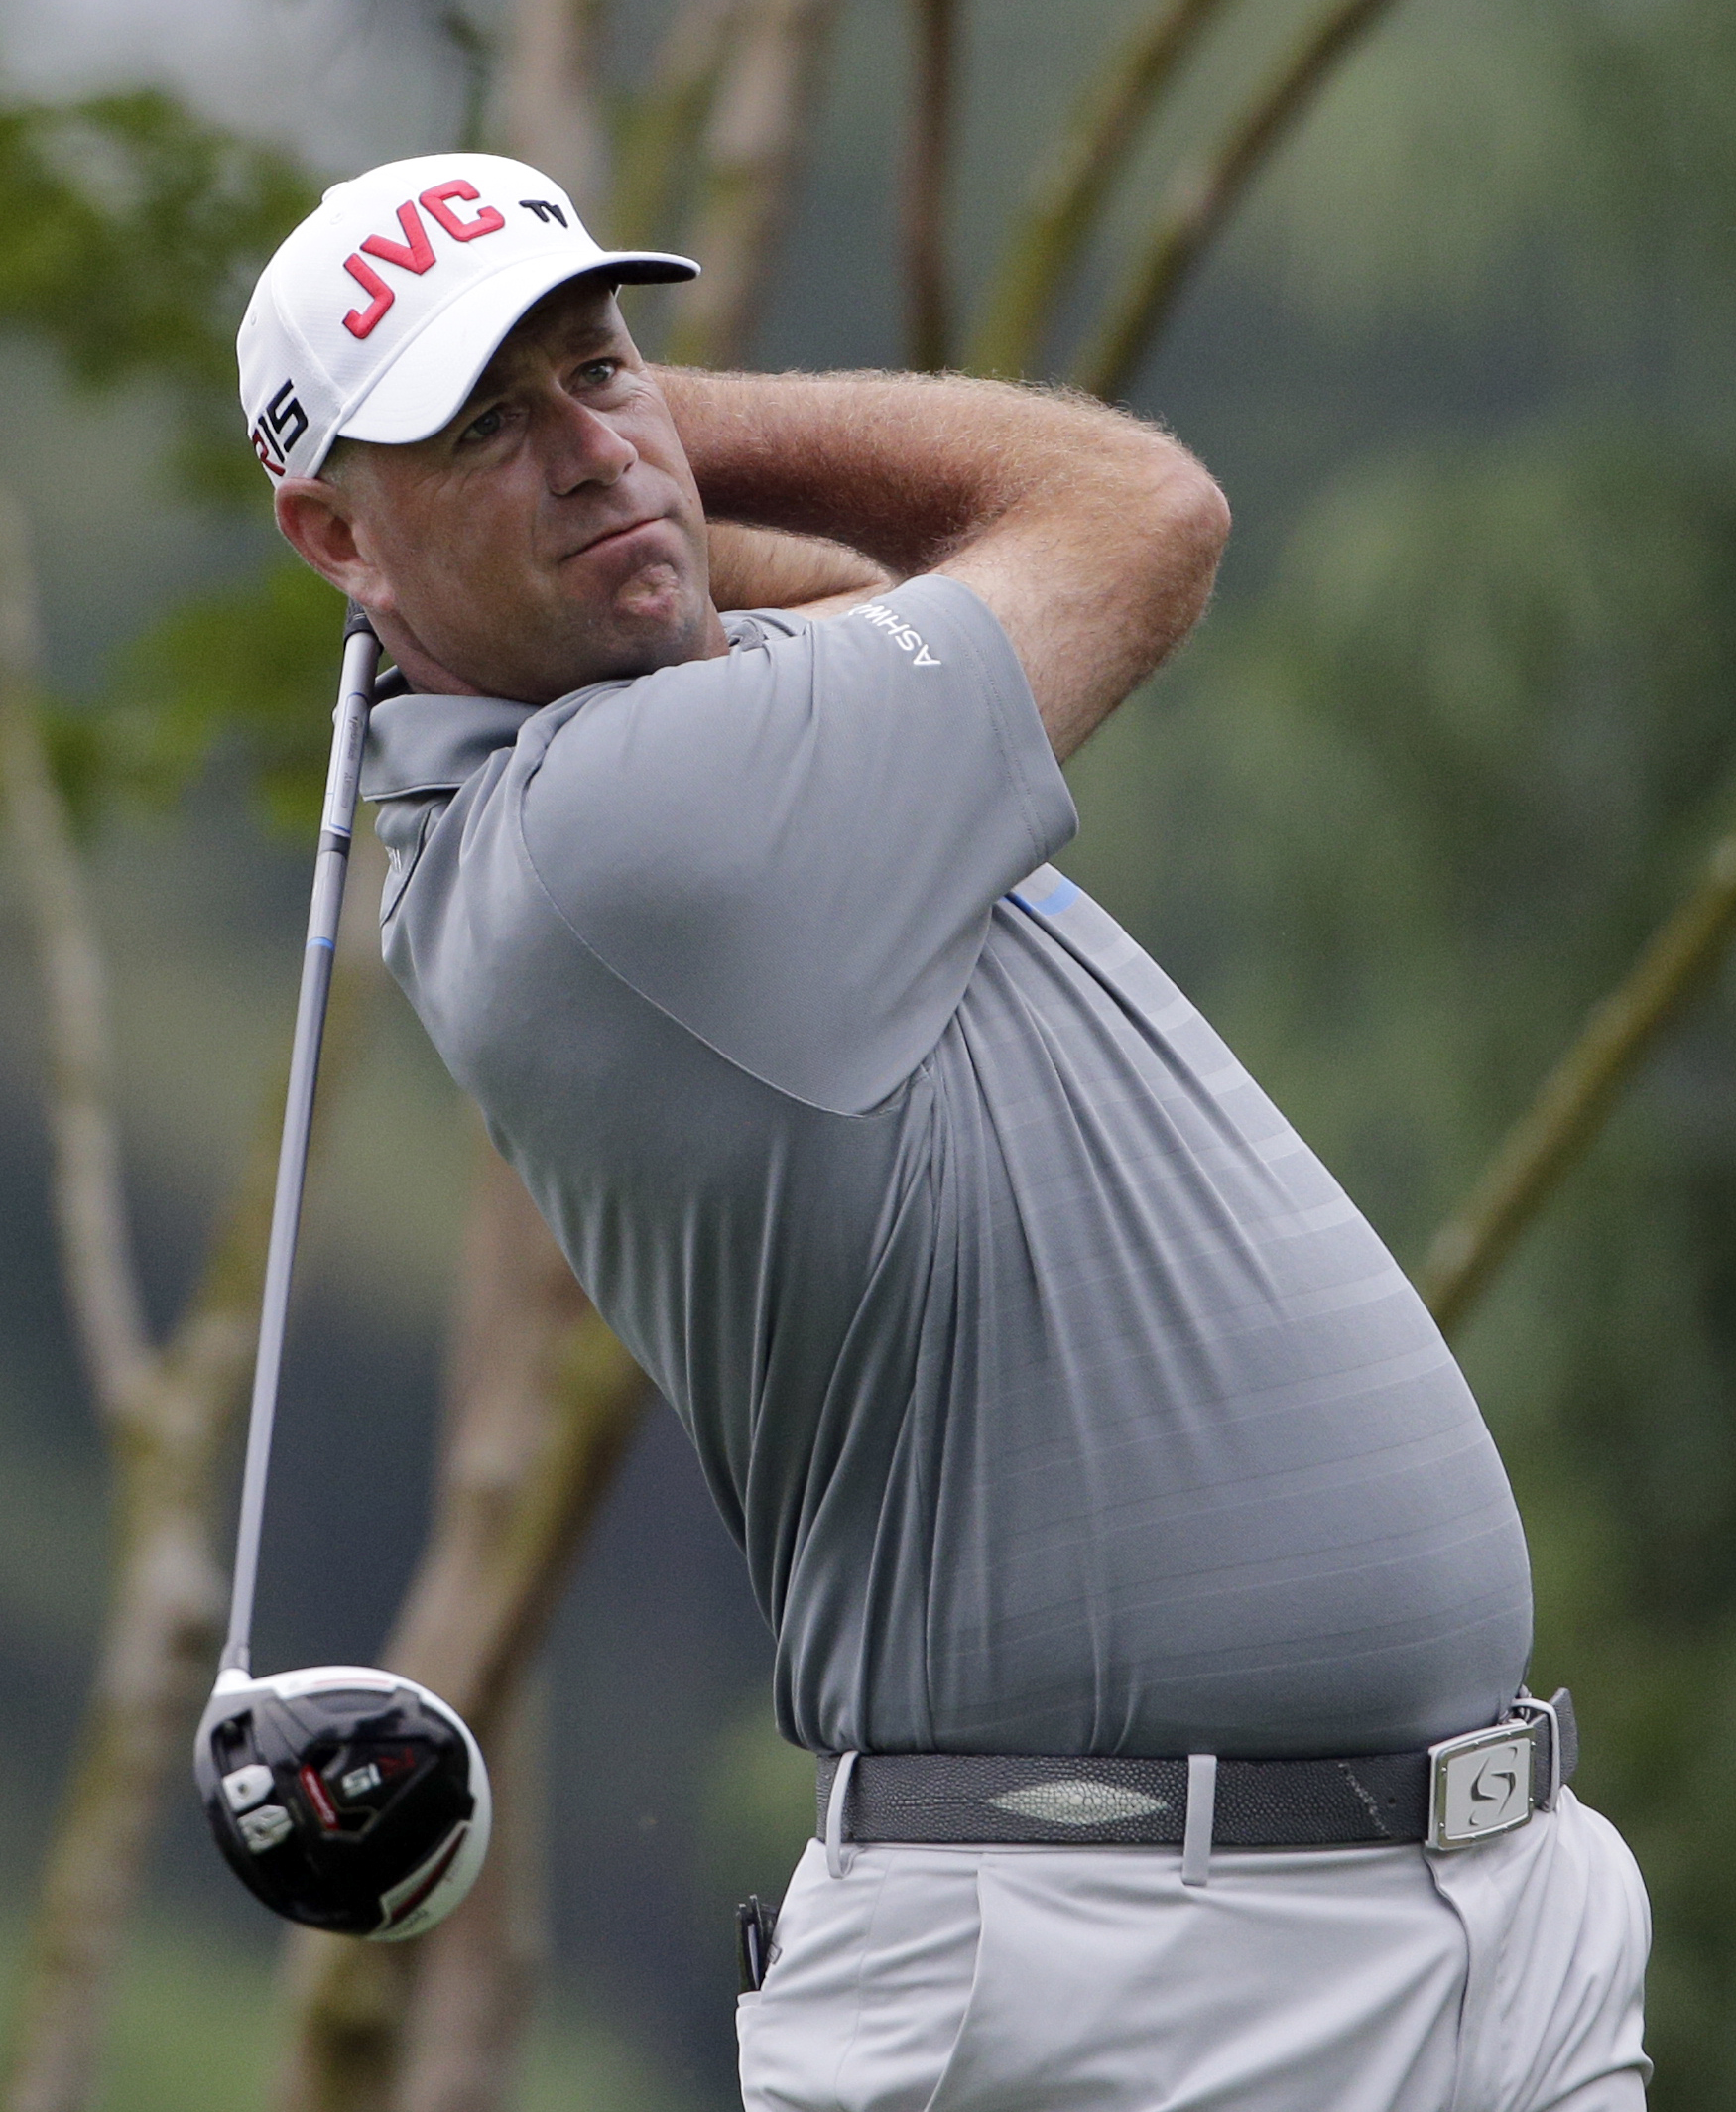 Stewart Cink watches his tee shot on the 11th hole during the second round of the Wells Fargo Championship golf tournament at Quail Hollow Club in Charlotte, N.C., Friday, May 15, 2015. (AP Photo/Chuck Burton)